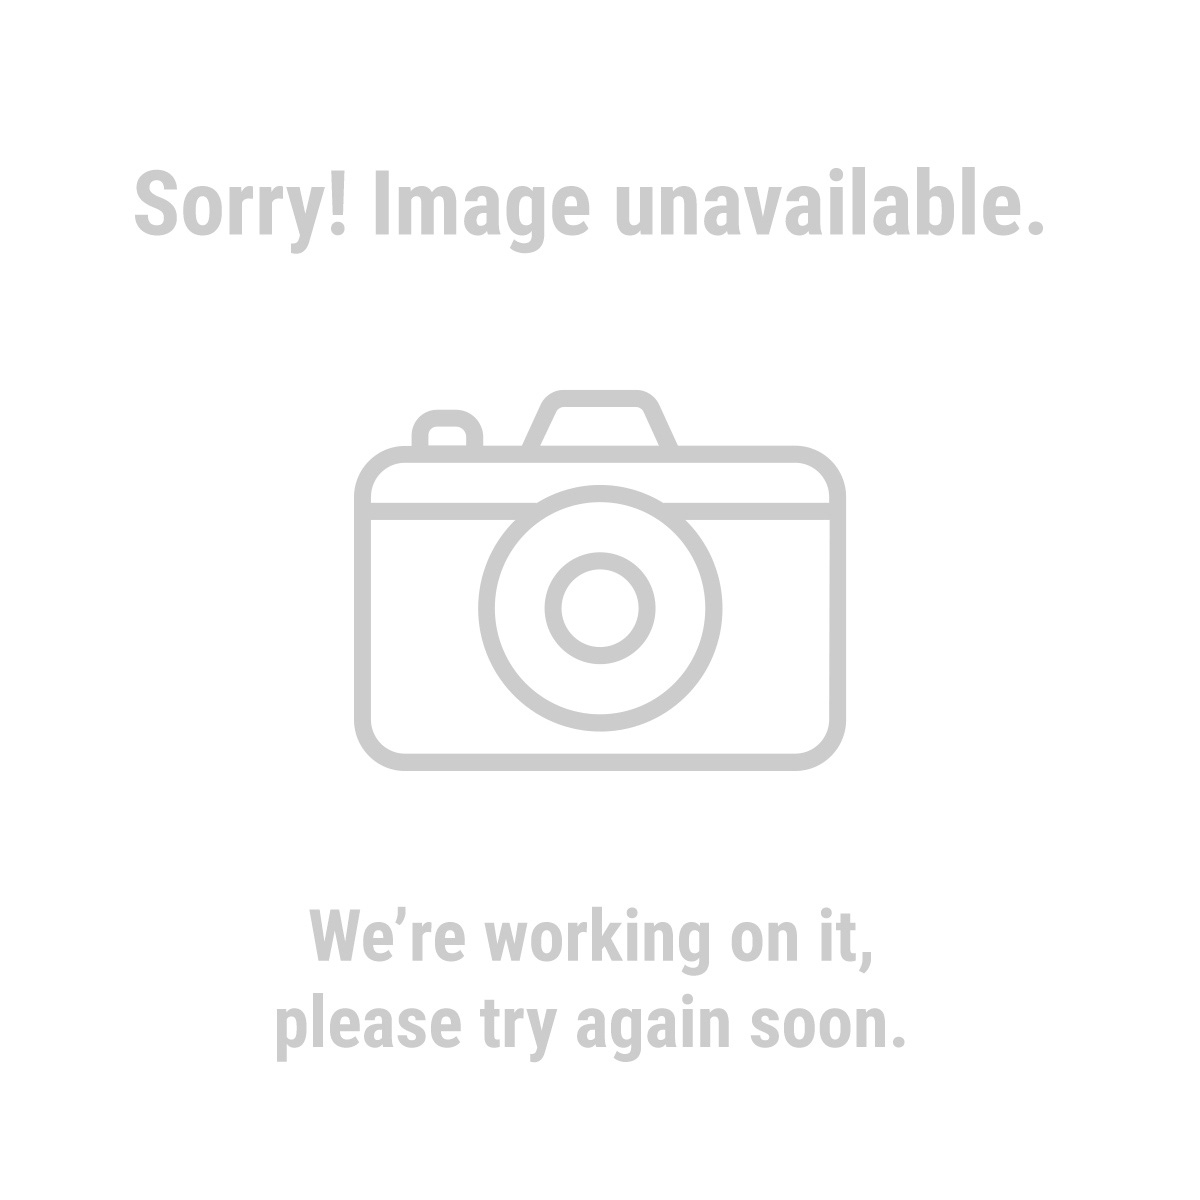 engine hoist chain harbor freight  engine  free engine